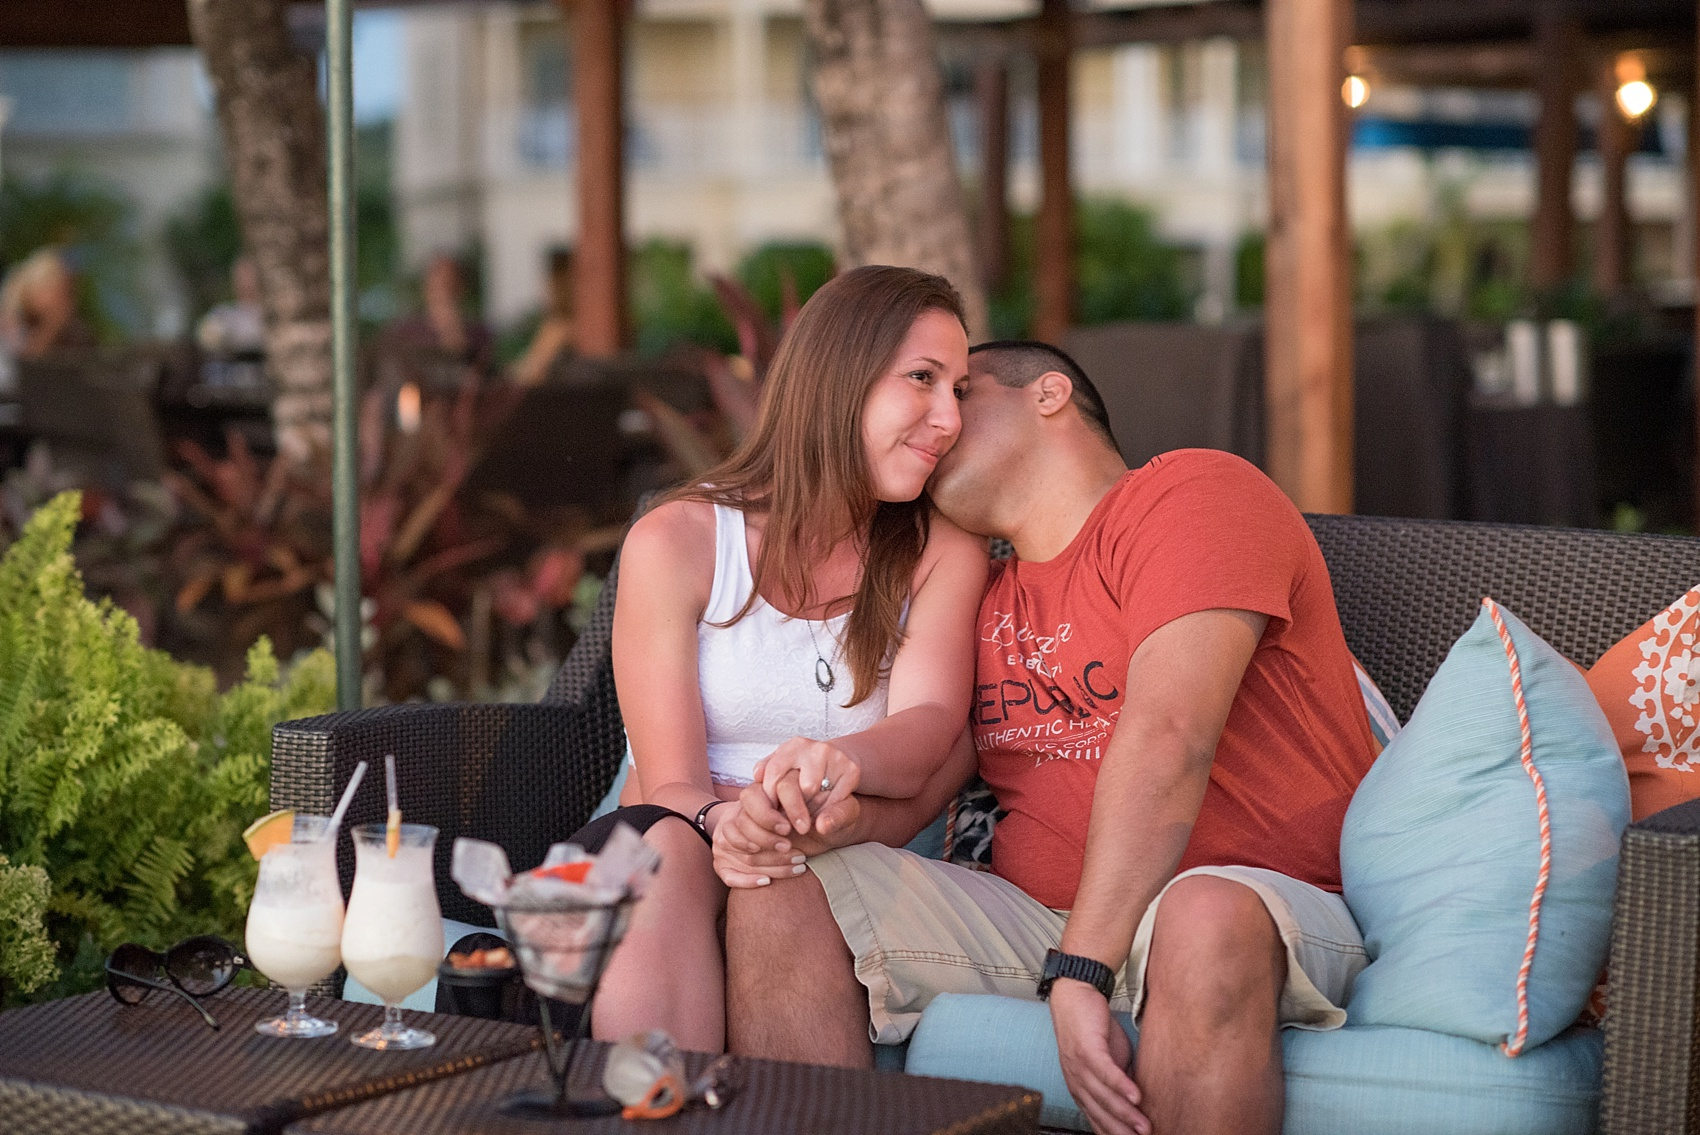 St. Lucia Proposal ideas - beachside romance at an oceanfront dinner at The Landings resort.  Photos by destination wedding photographer Mikkel Paige Photography.